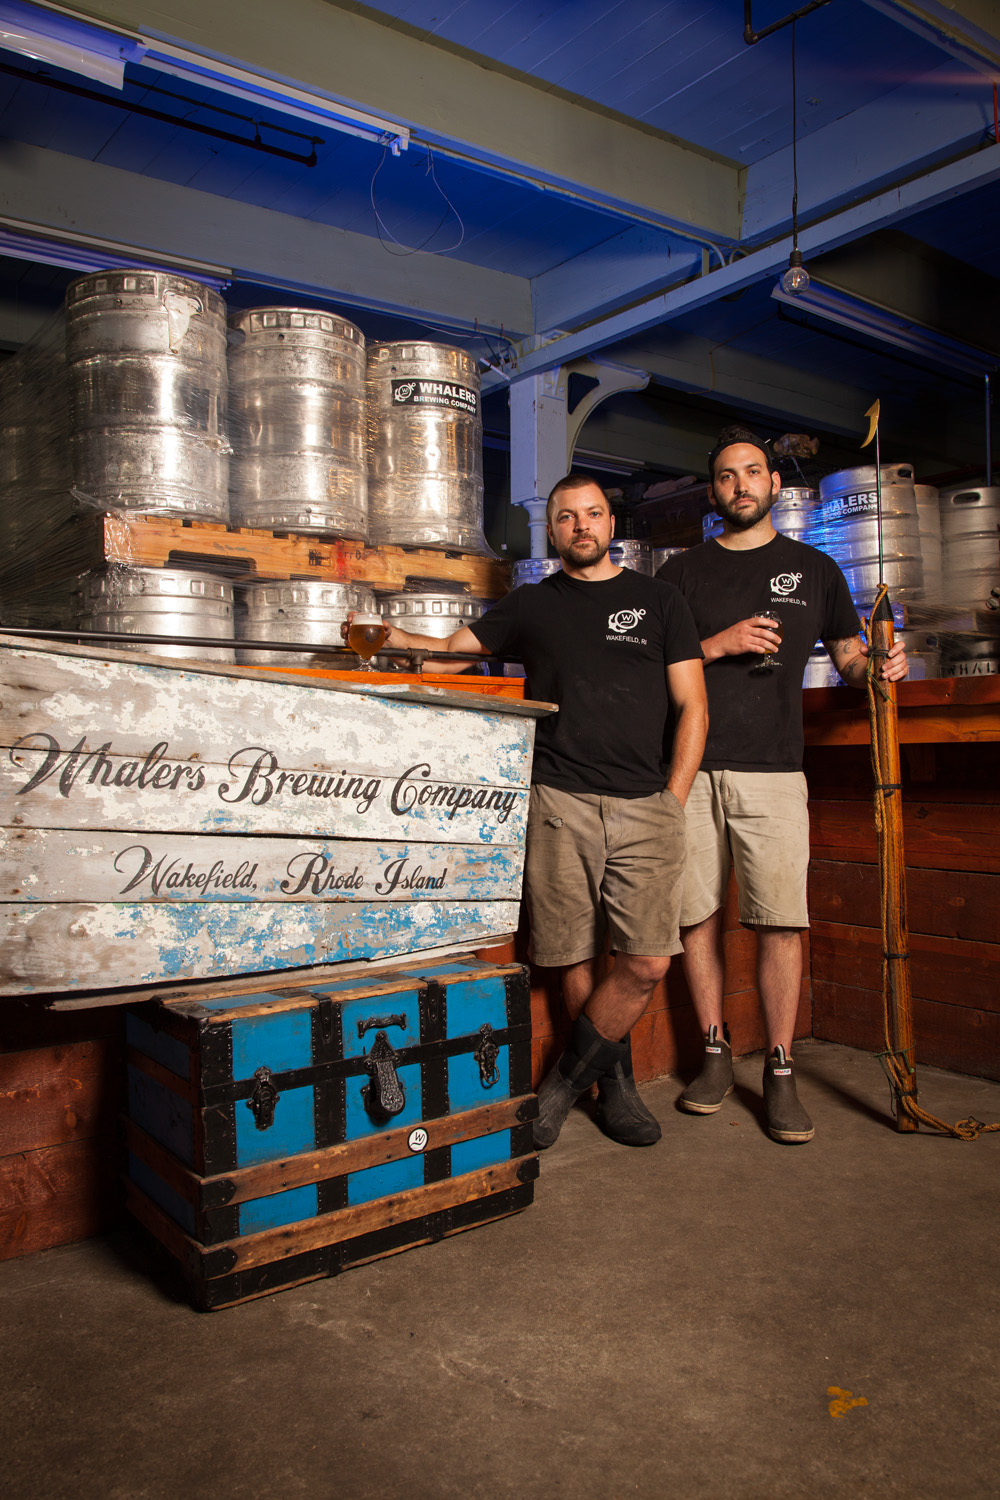 Wesley Staschke and Josh Dunlap, Brewers at Whalers Brewing Co. South Kingston, RI Est. 2011